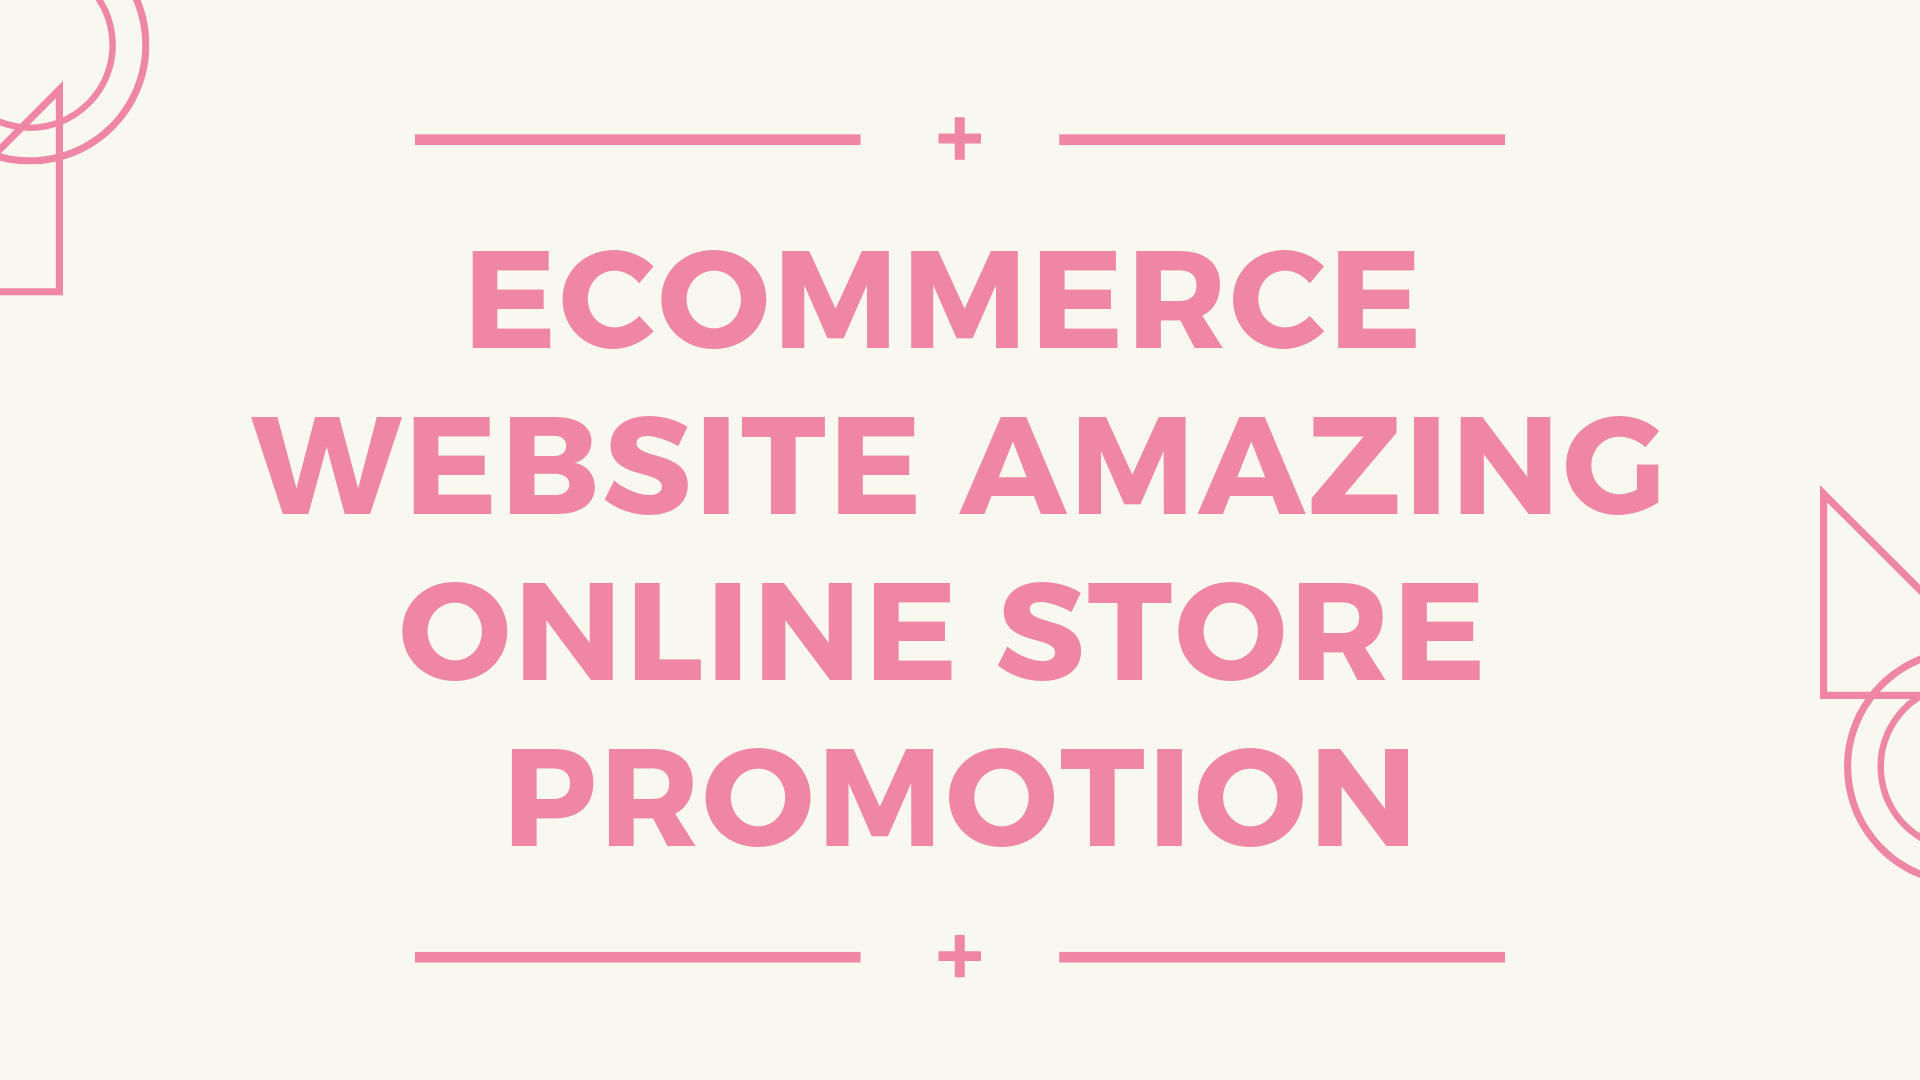 build ecommerce website amazing online store PROMOTION